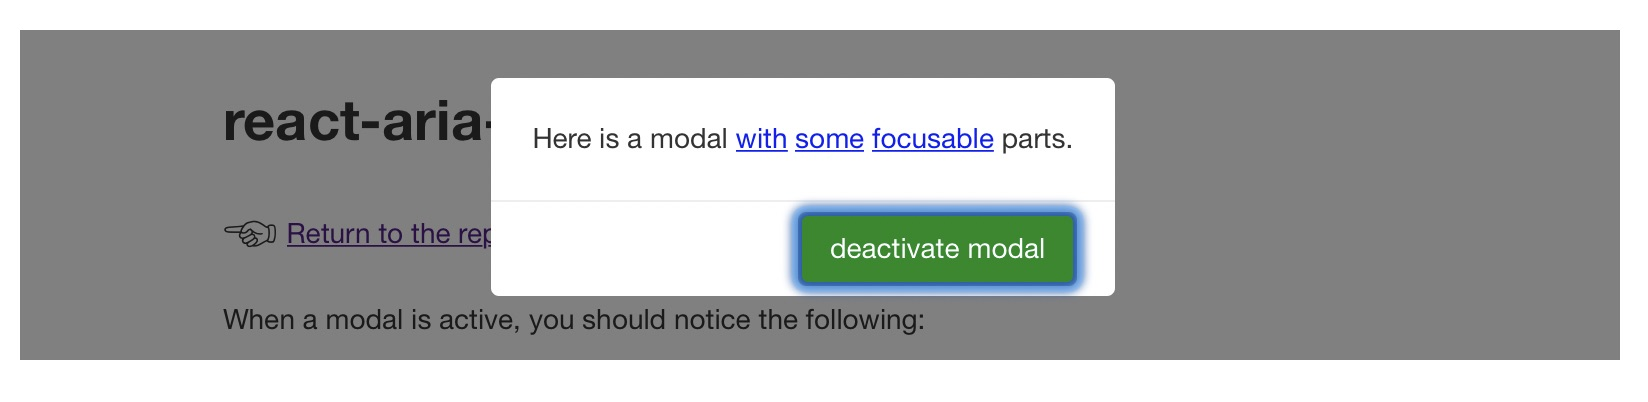 Image showing a modal with a clear focus order.